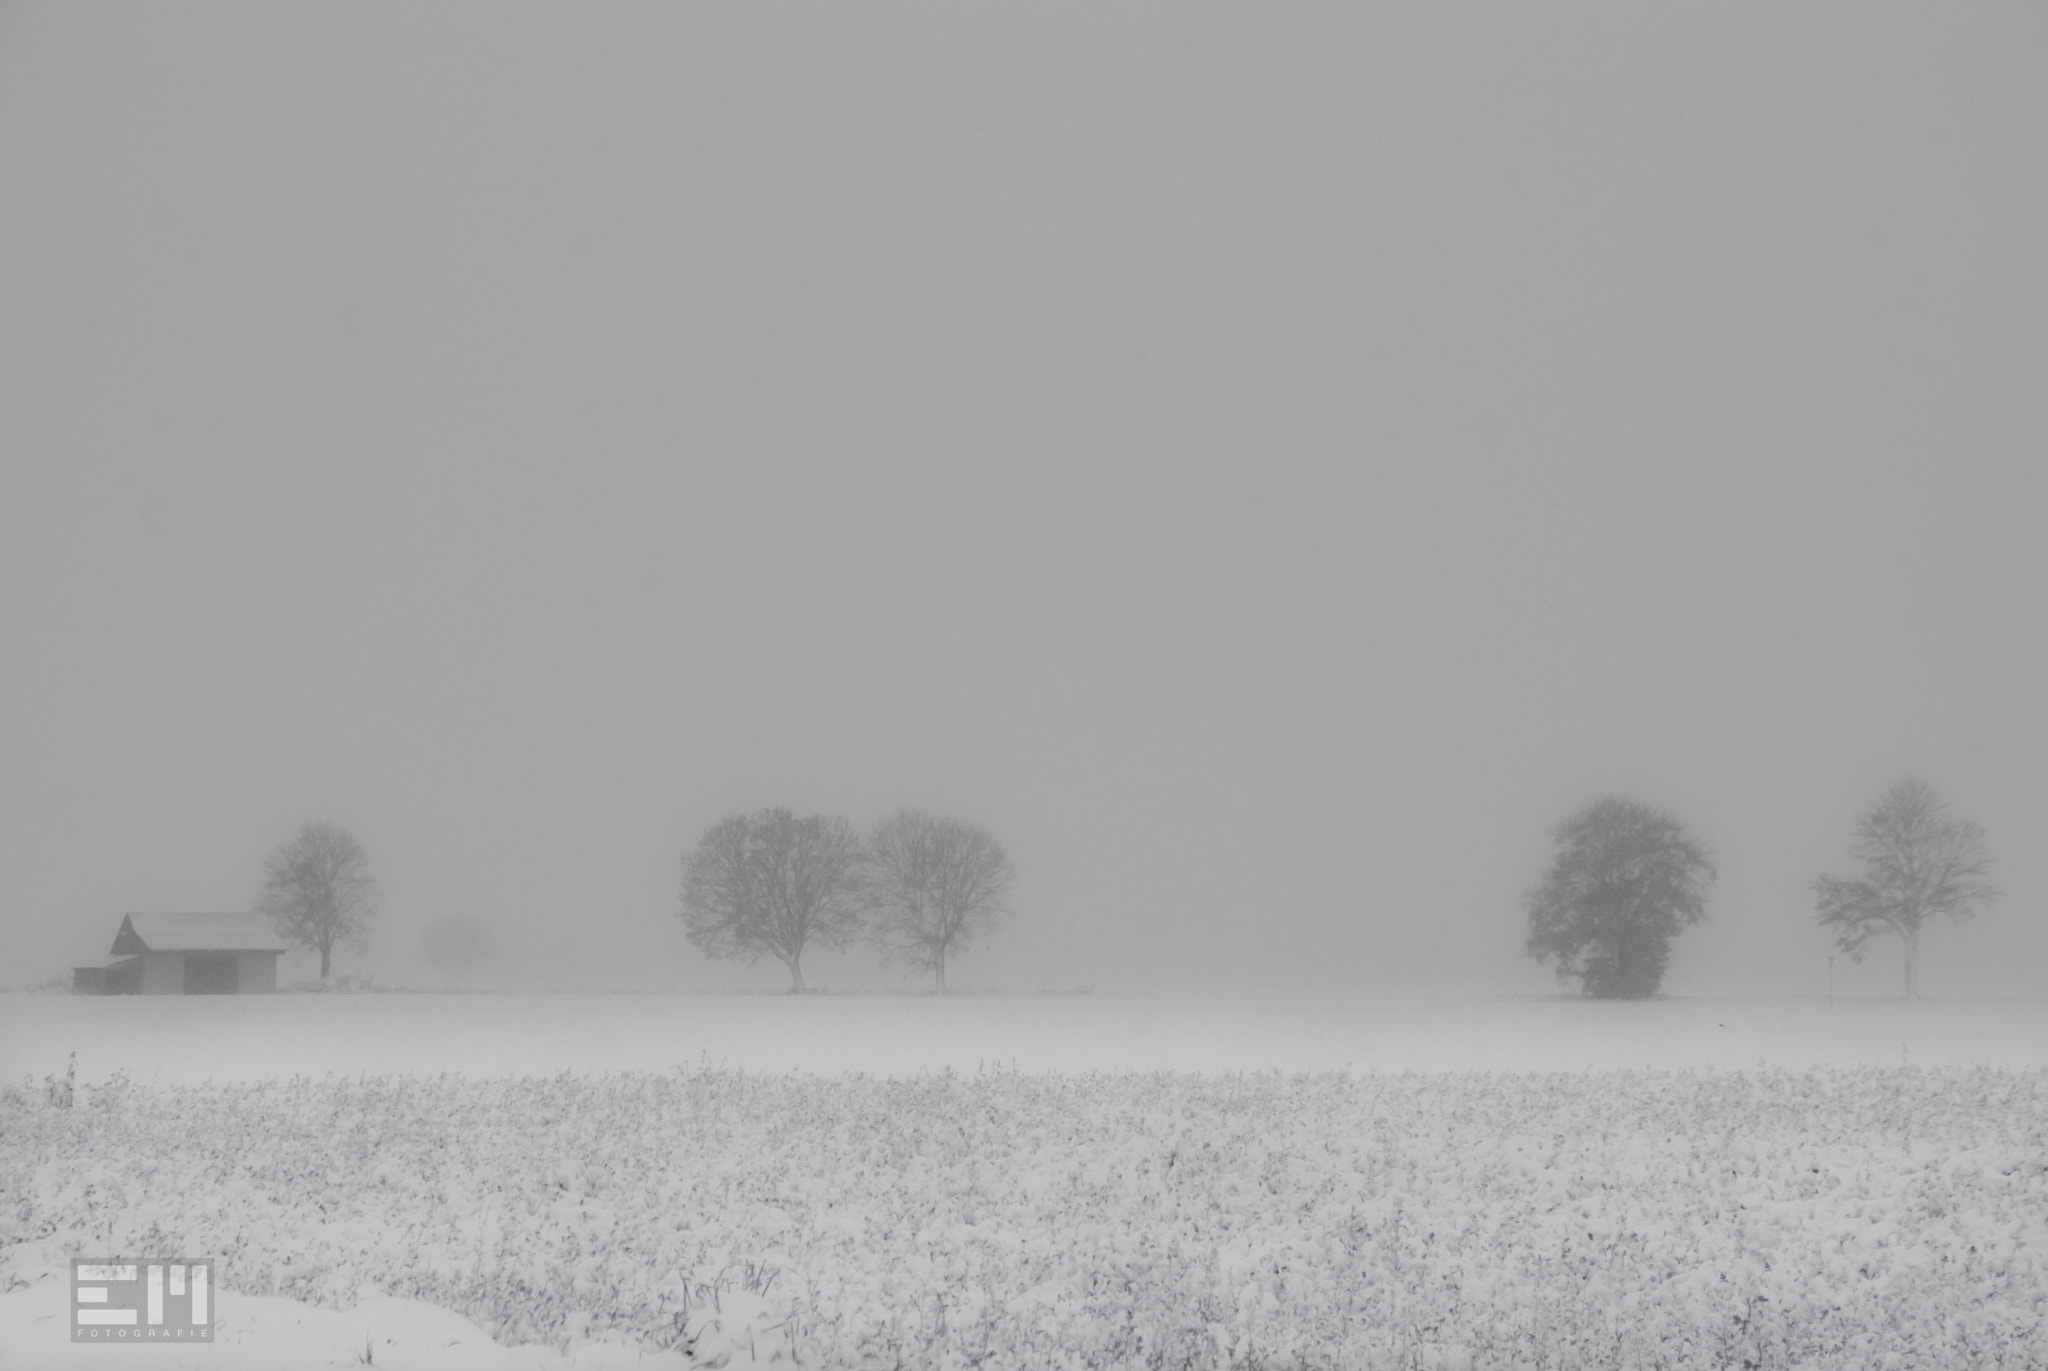 Photograph It's snowing by Edel Mohr on 500px